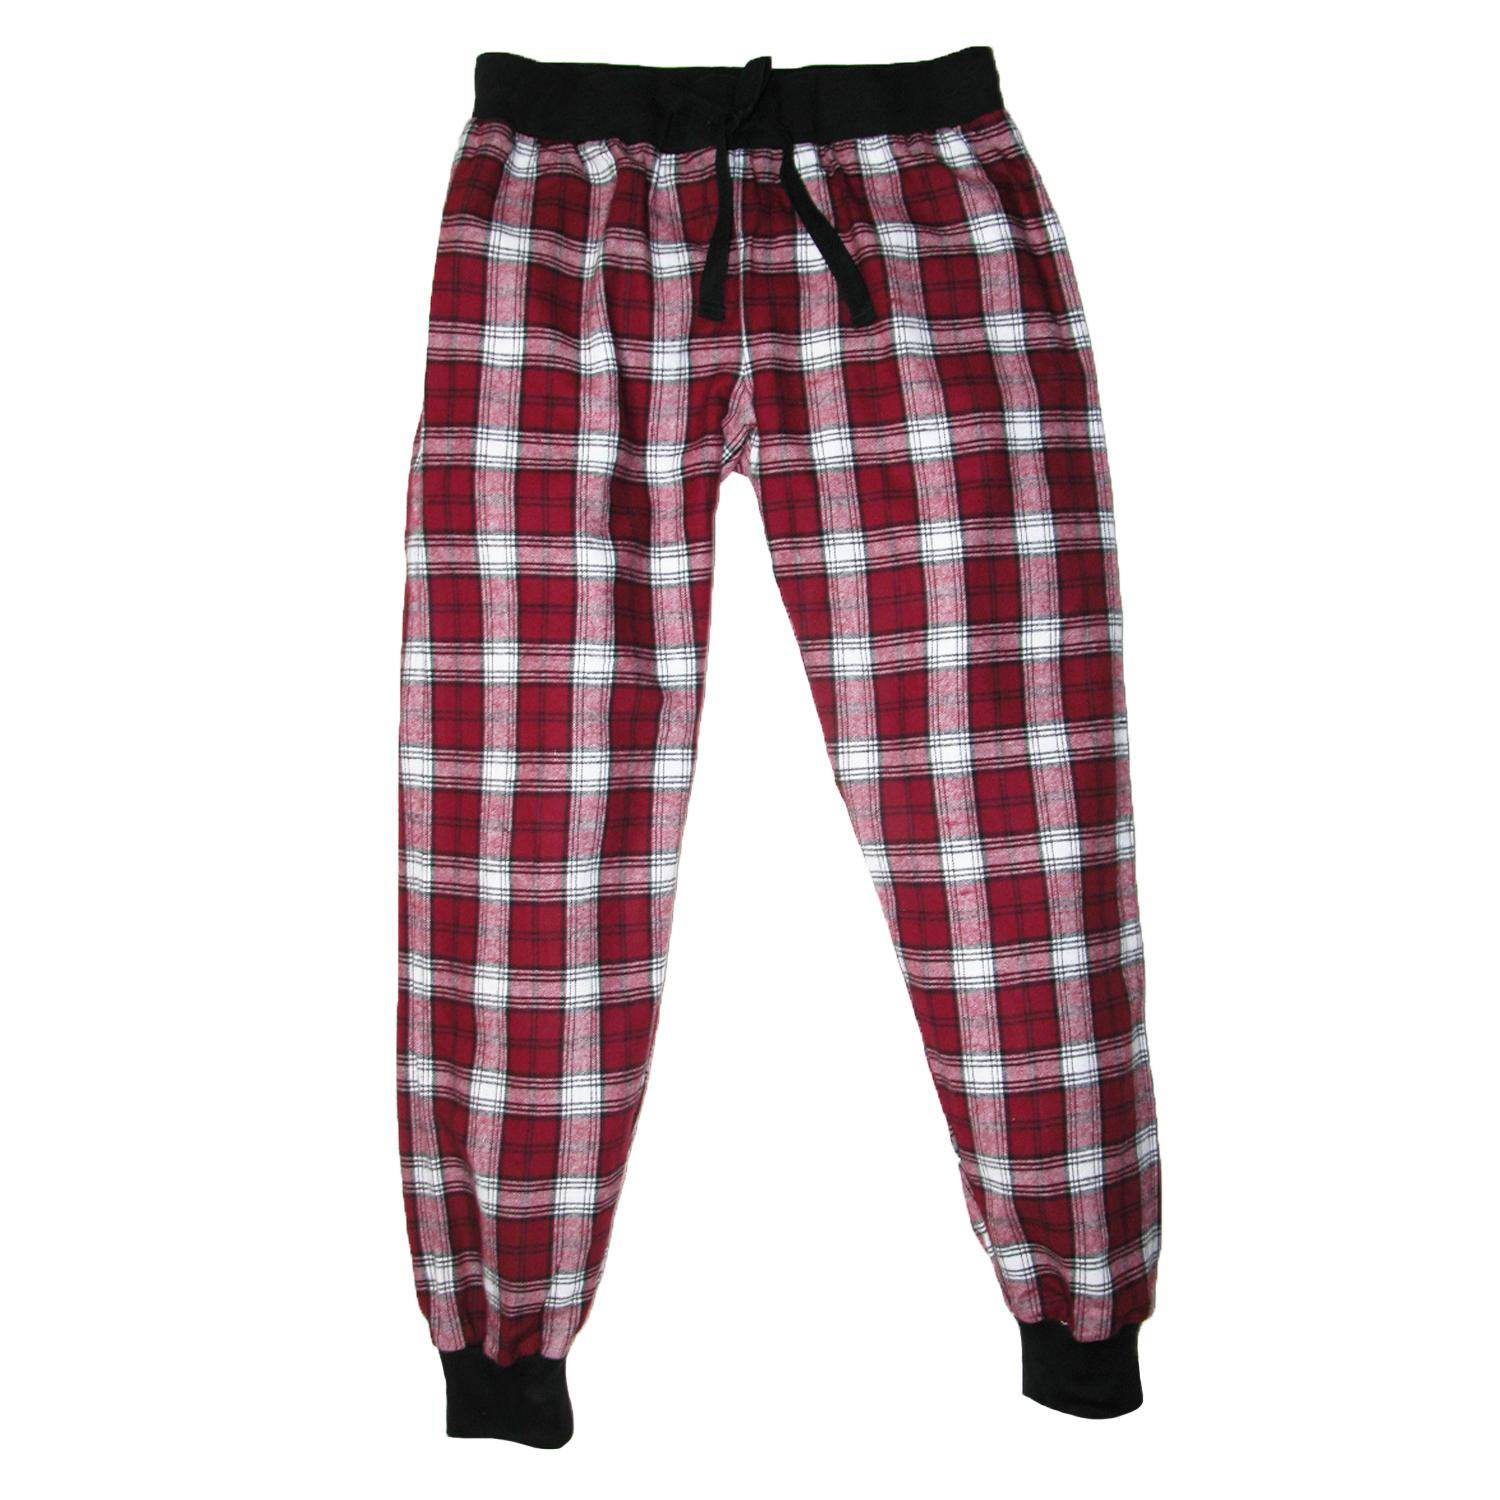 Luxury Women39s Plush Pajama Pants 9636  Women39s